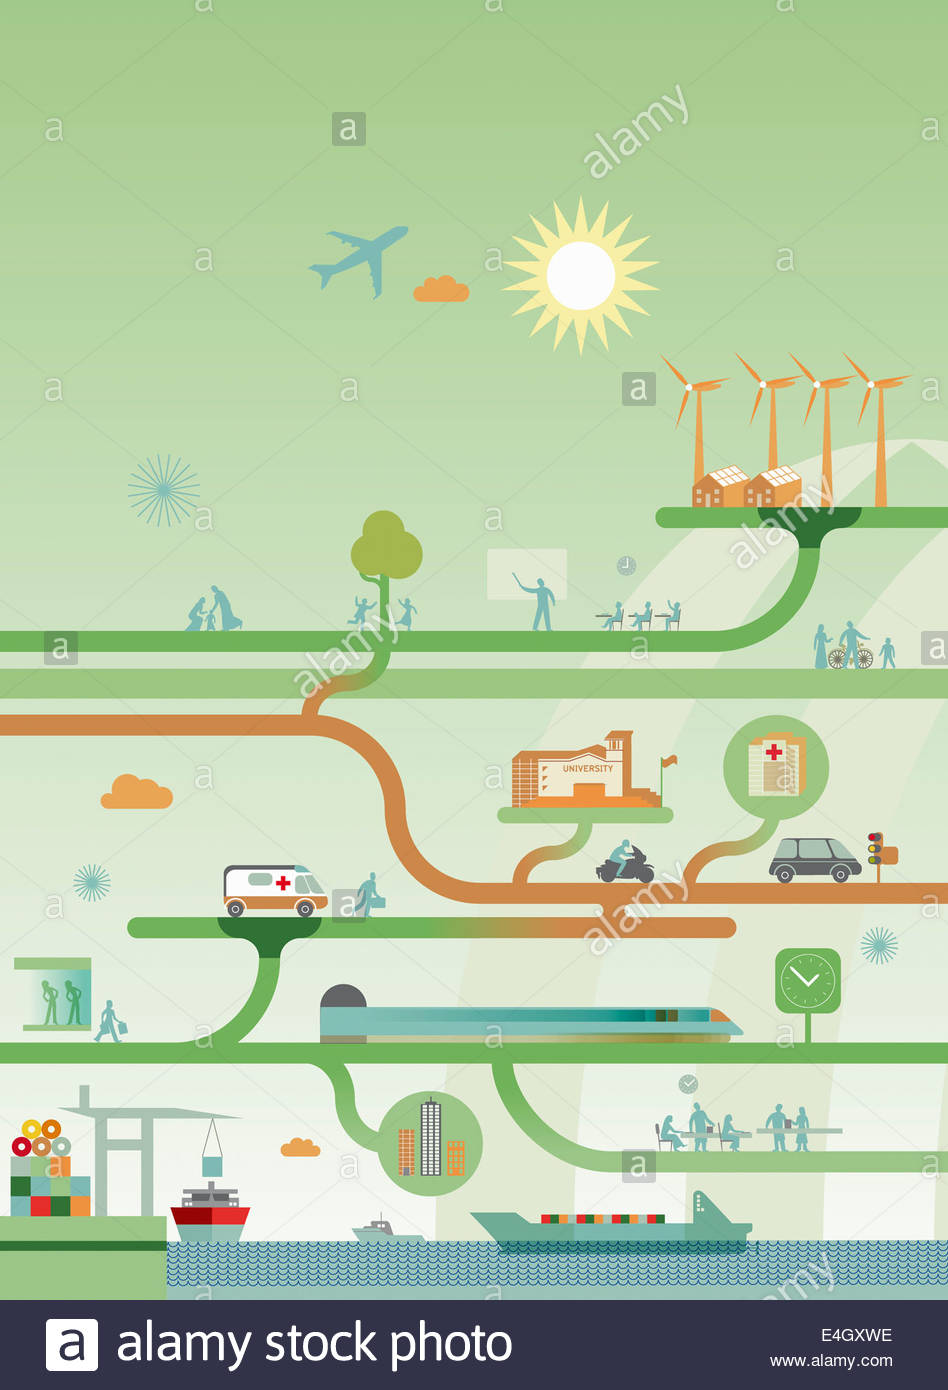 Network diagram of interconnection between energy, work, play and the provision of good and services - Stock Image